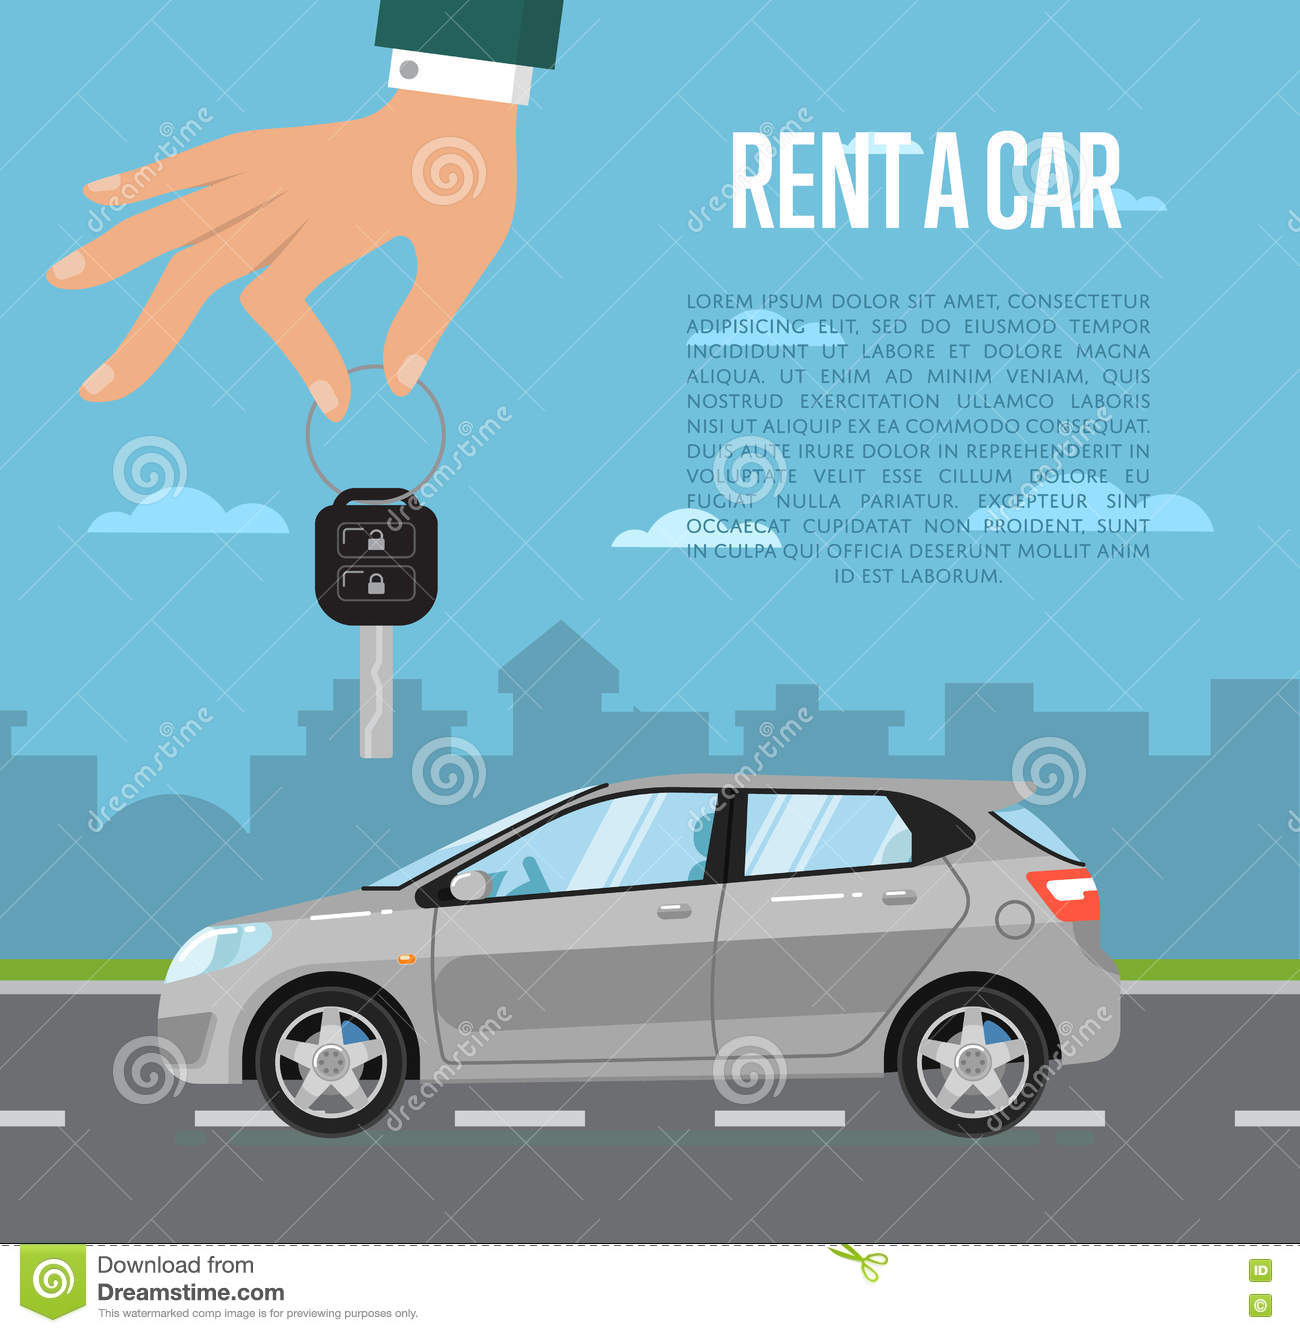 Car Rental: Rent A Car Concept With Hand Holding Auto Key Cartoon